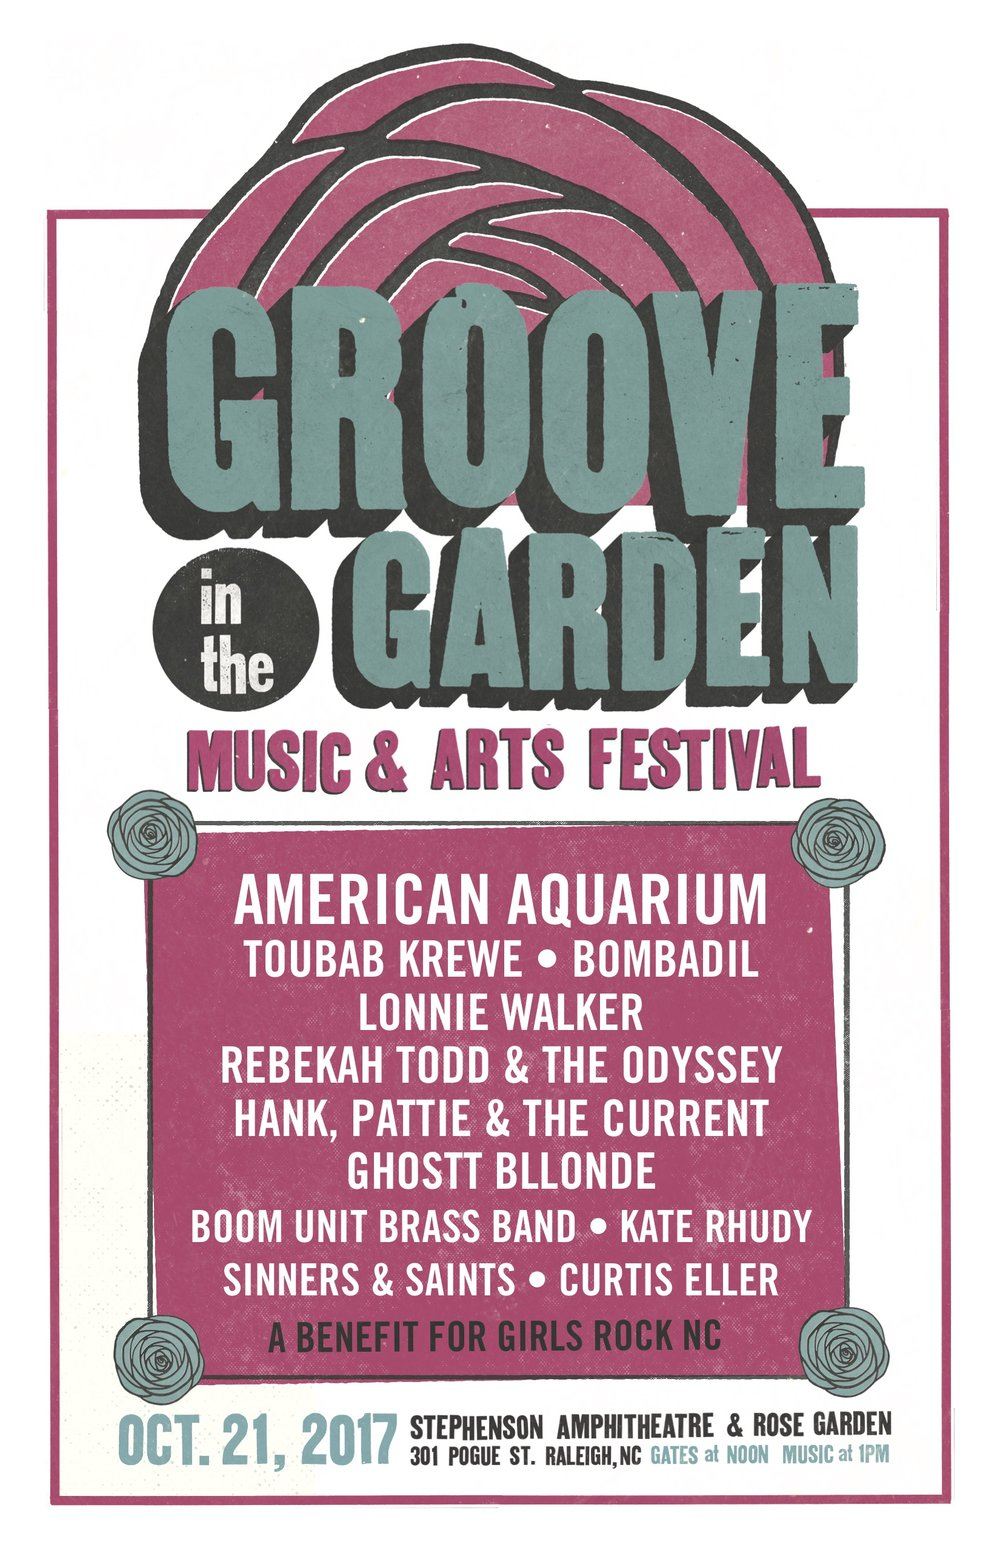 Groove in the Garden 2017  - Come out to the Raleigh Rose Garden and Ampitheater this Saturday Oct 21st 10am -6pm for Art and Food Trucks and Music(Music until 9pm!) I will have a booth with my #eyeswideopen photos printed on watercolor, notecards and portfolio of my portrait work. Come by and say hi! http://thepourhousemusichall.com/event/groove-in-the-garden-2/